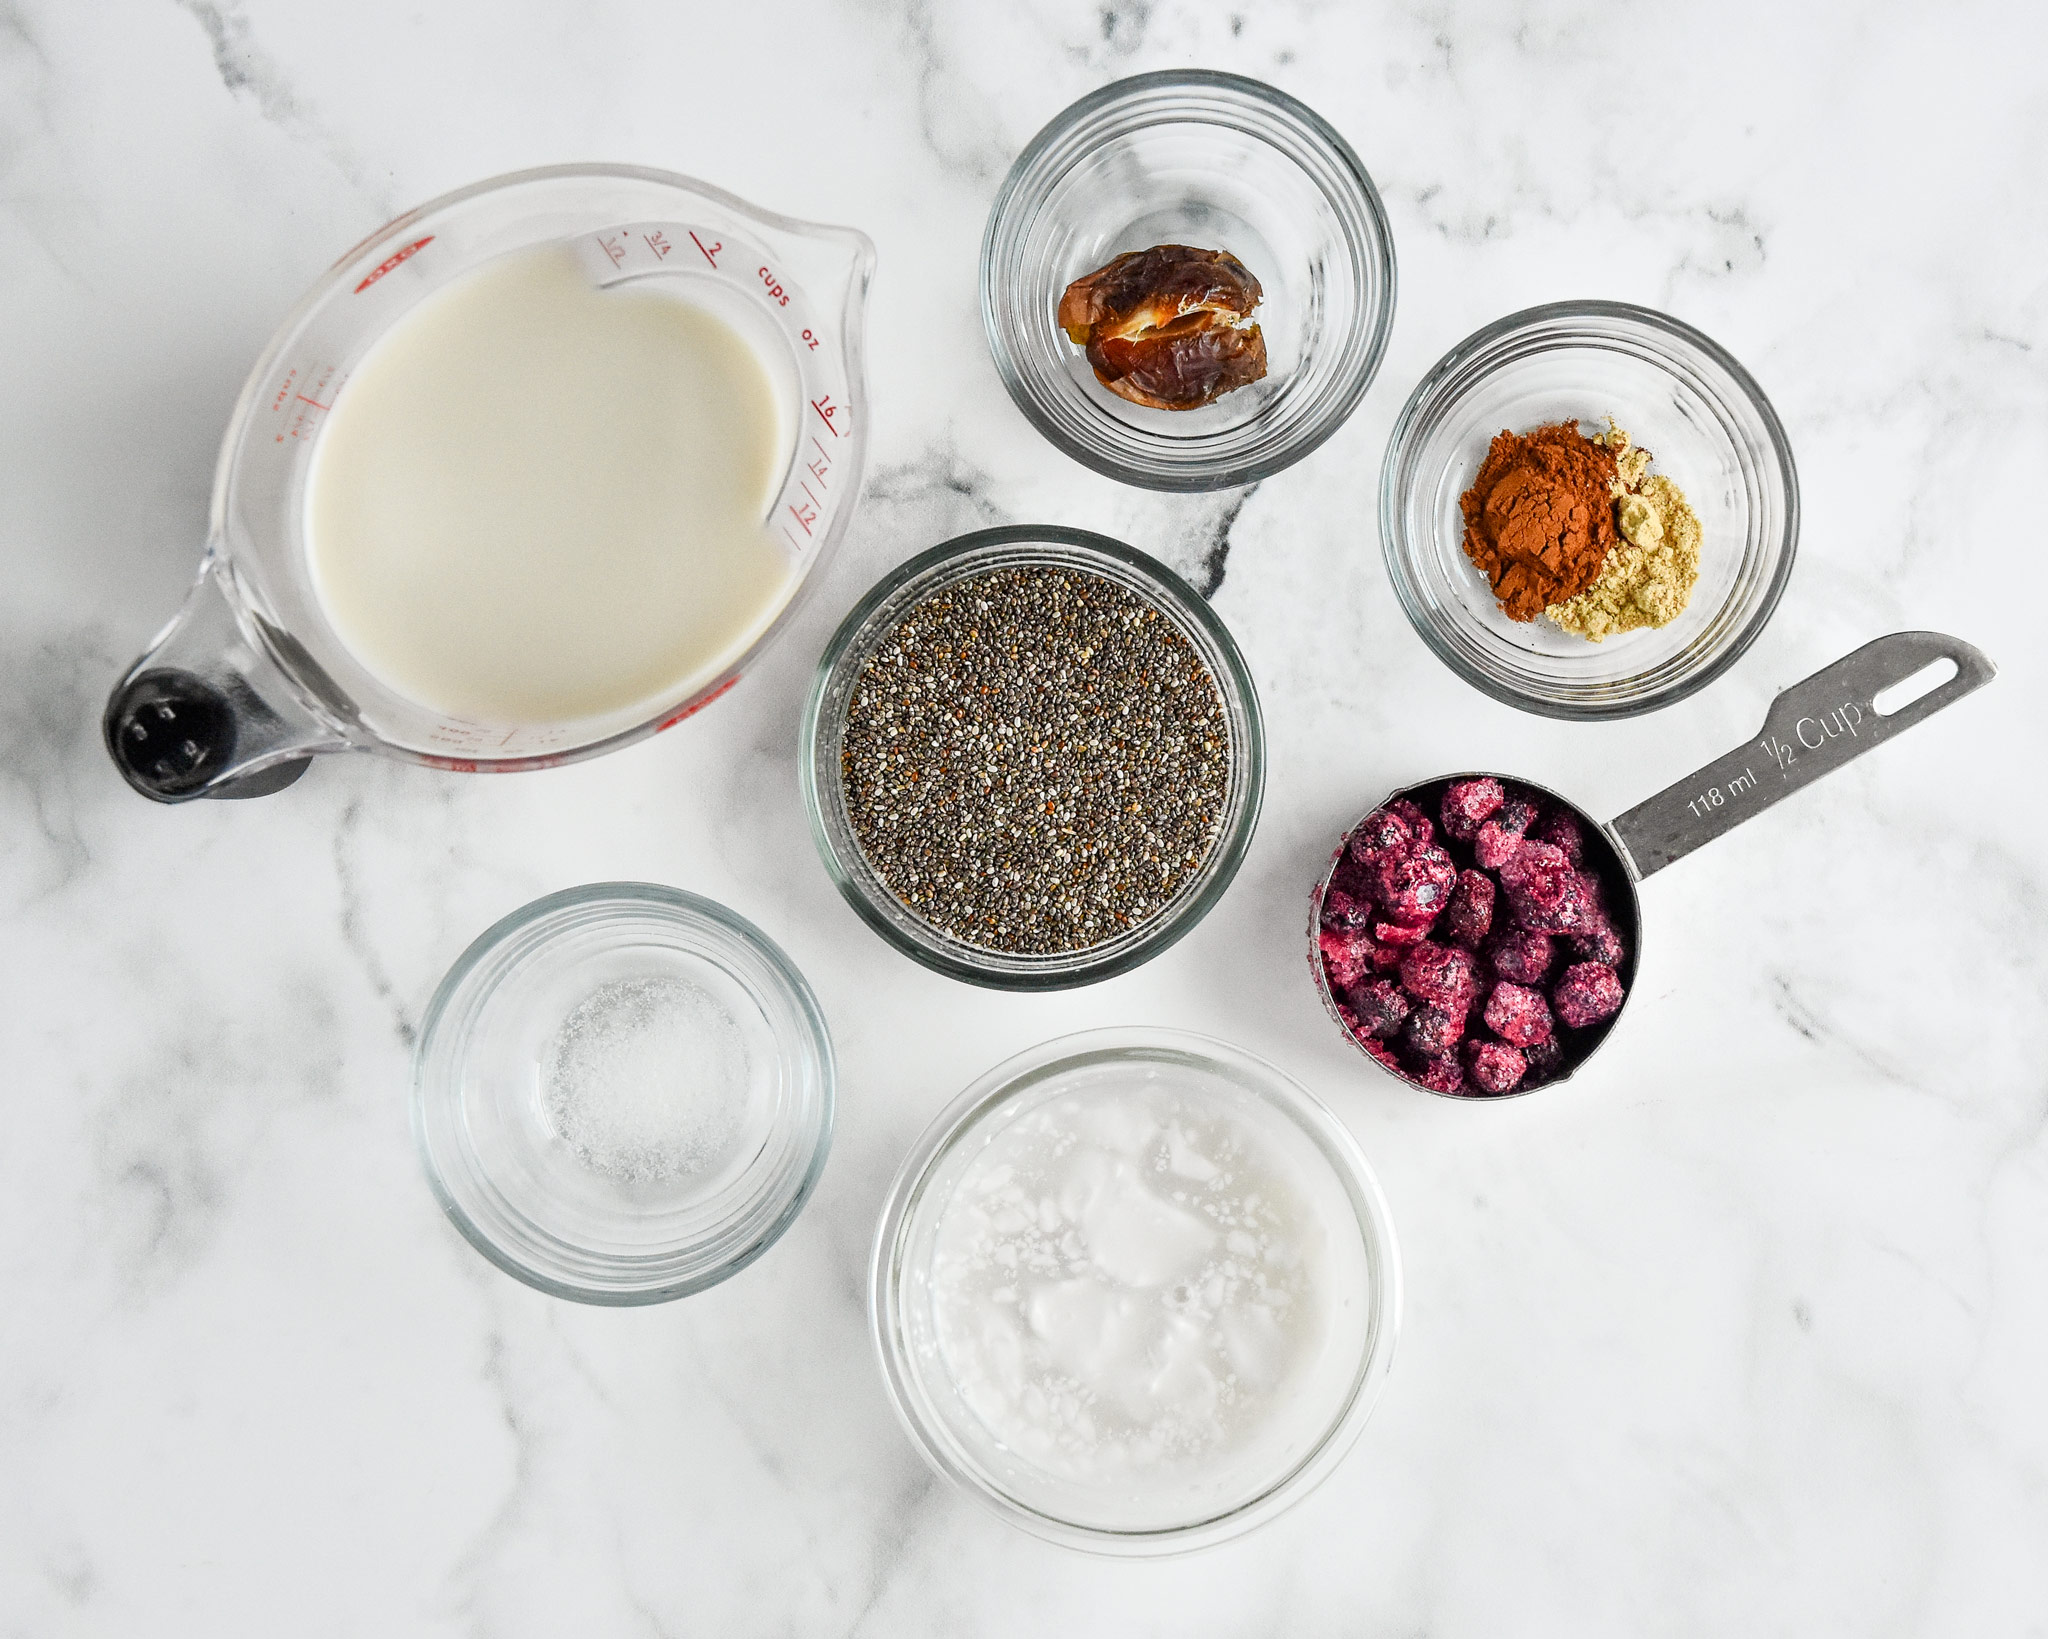 ingredients in the blueberry spice chia pudding